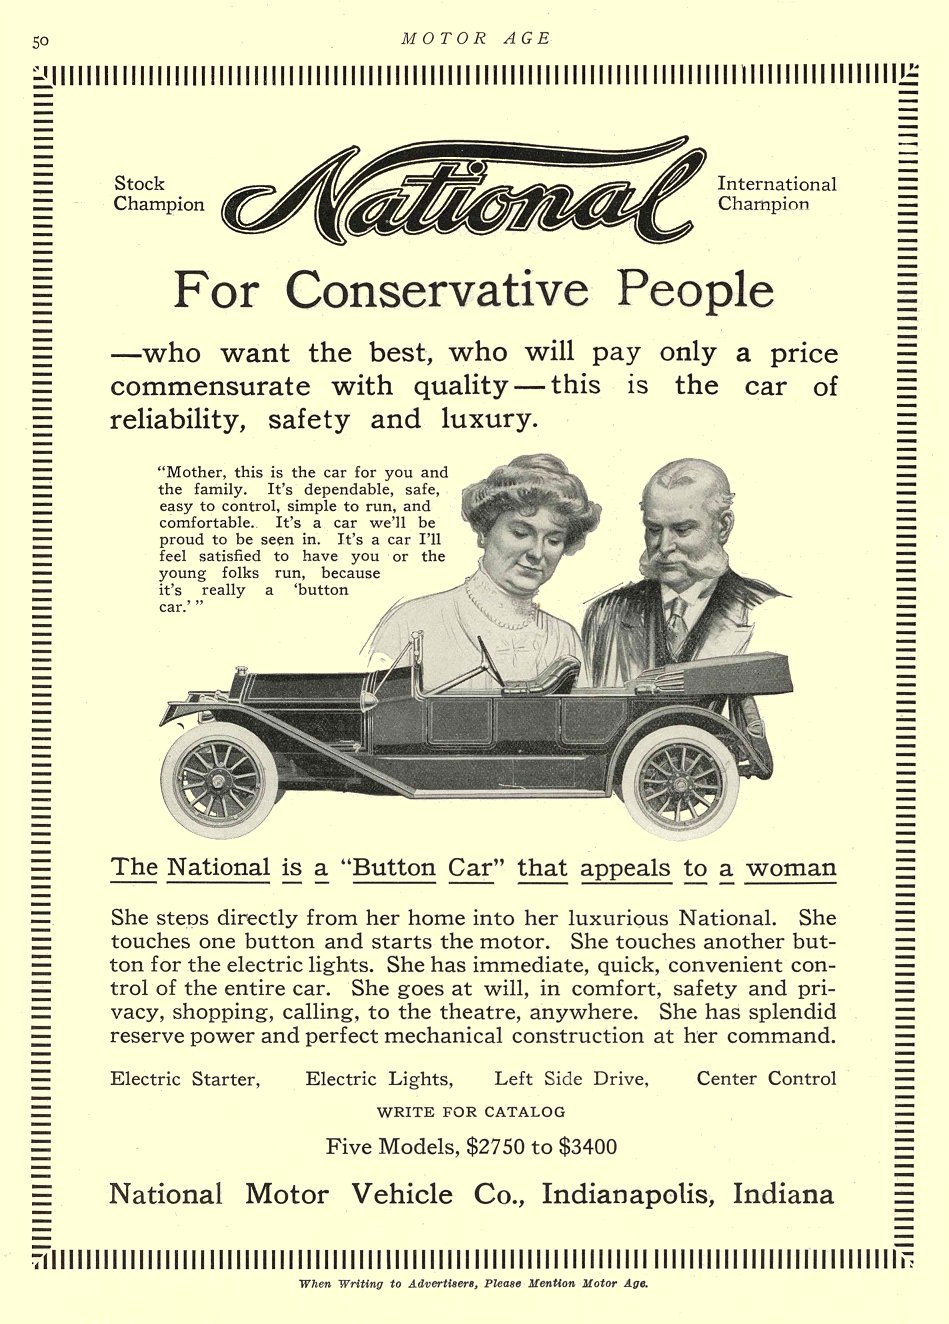 1913 4 10 NATIONAL For Conservative People National Motor Vehicle Co. Indianapolis, Indiana MOTOR AGE April 10, 1913 8.5″x11.5″ University of Minnesota Library page 50